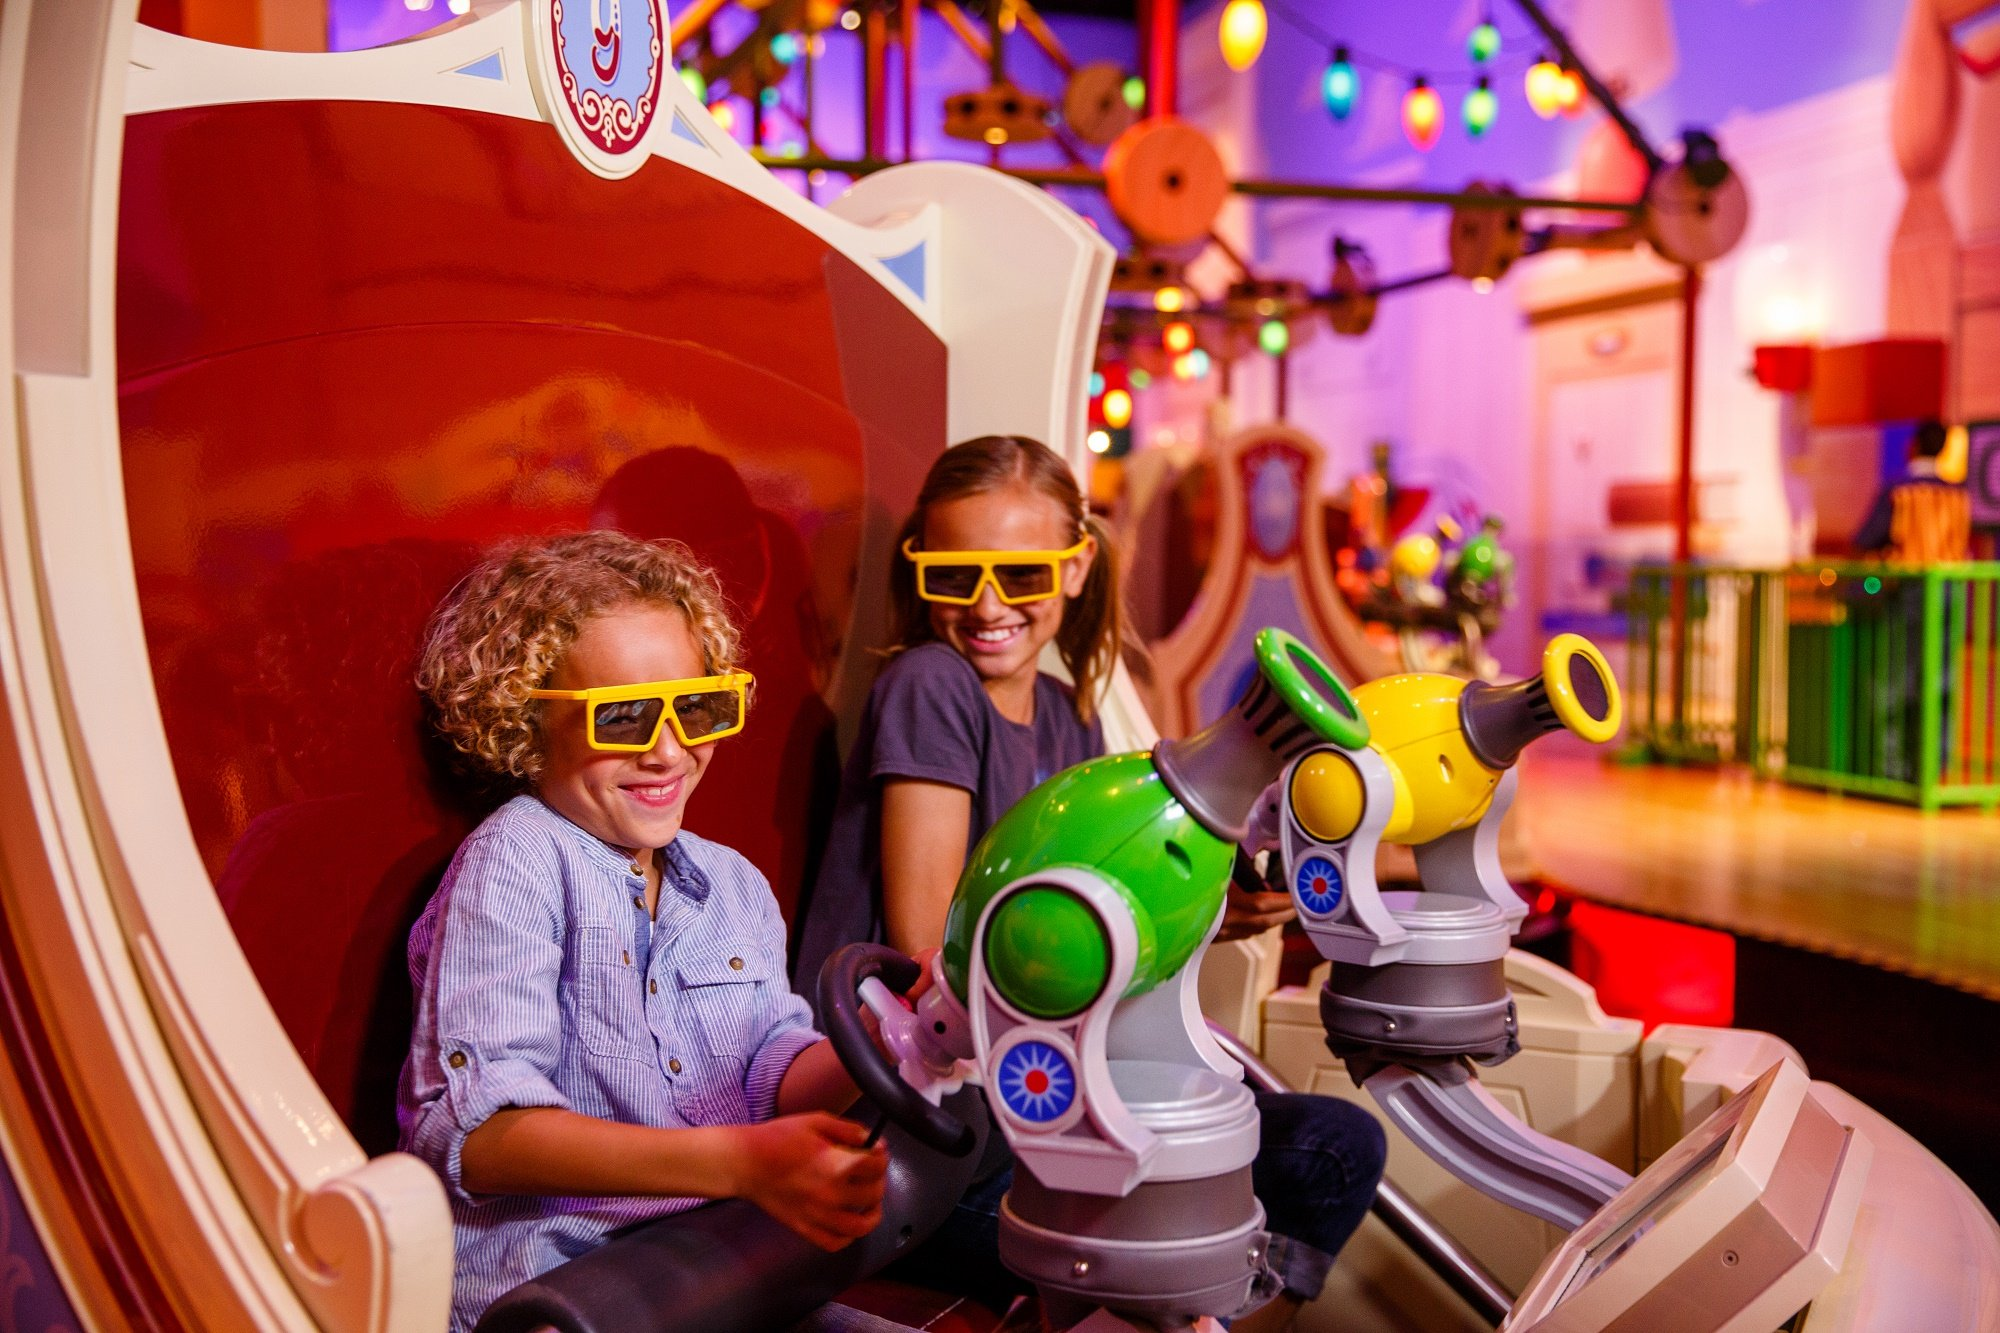 Best Disney Toys And Games For Kids : Best walt disney world rides for kids laughingplace